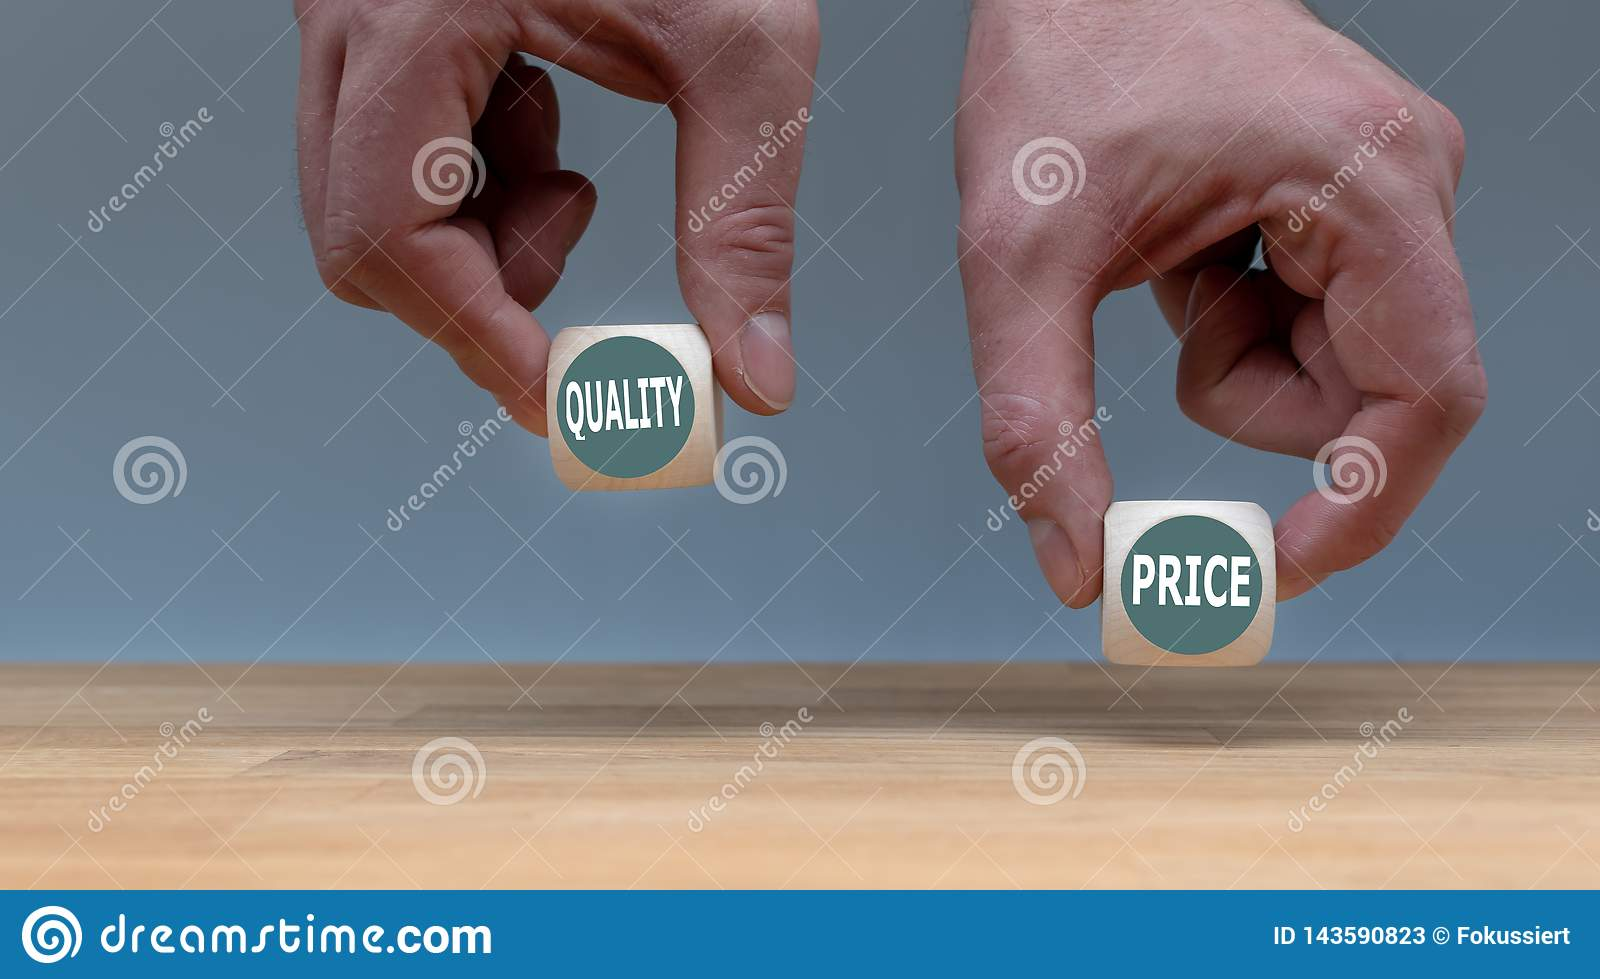 Symbol for choosing quality instead of a cheap price.